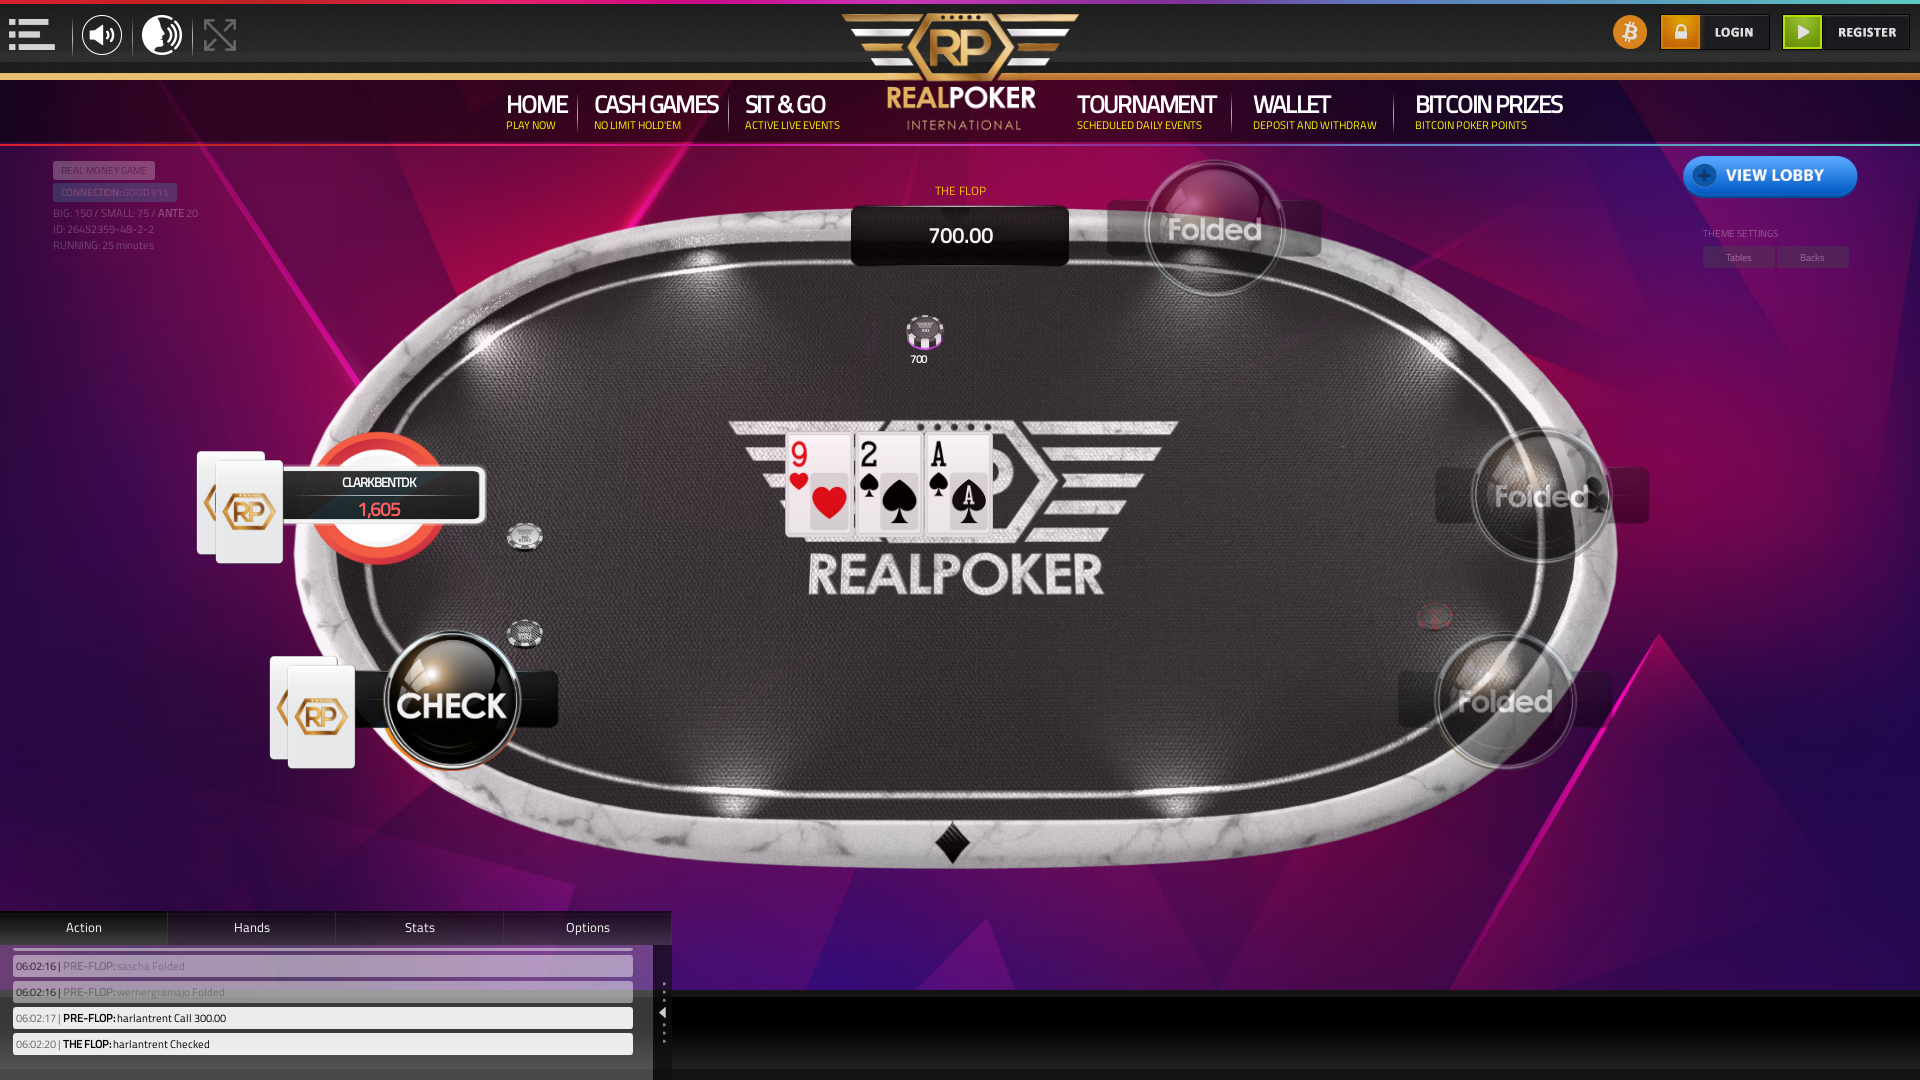 Online poker on a 10 player table in the 25th minute match up